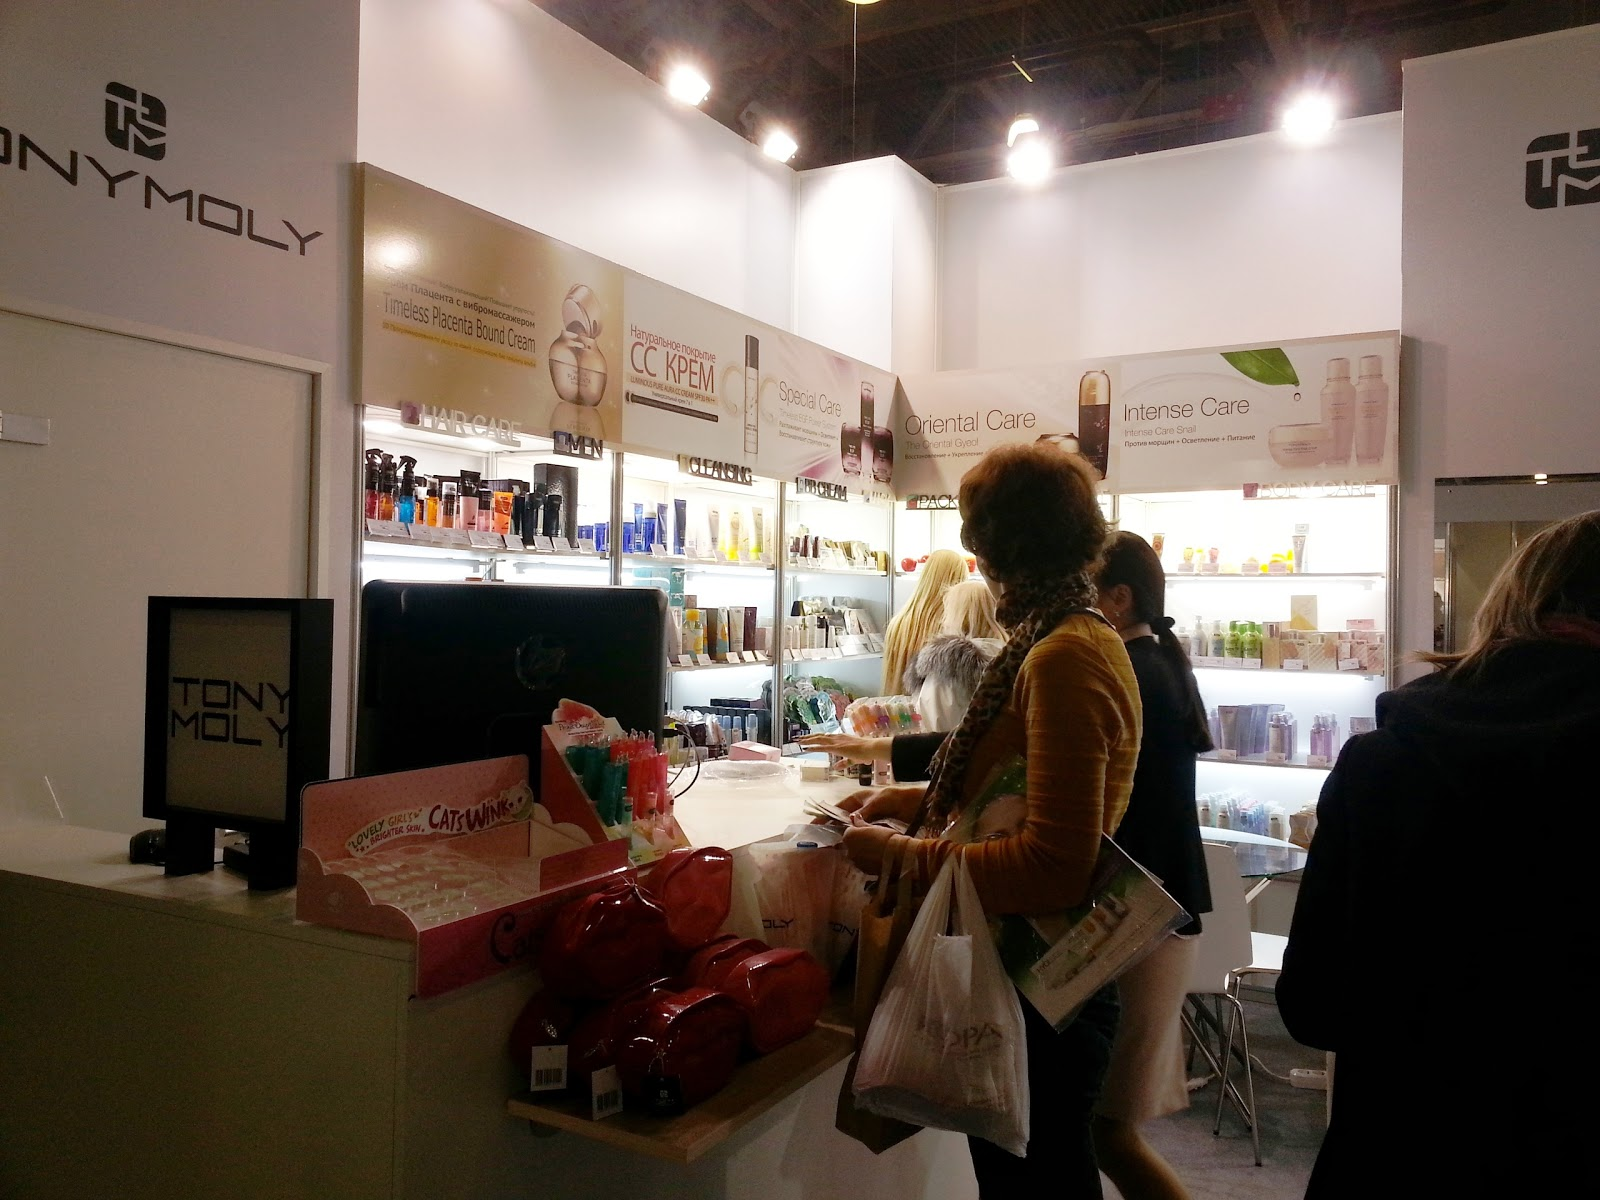 interSHARM, interSHARM 2013, TONYMOLY, ТОНИМОЛИ